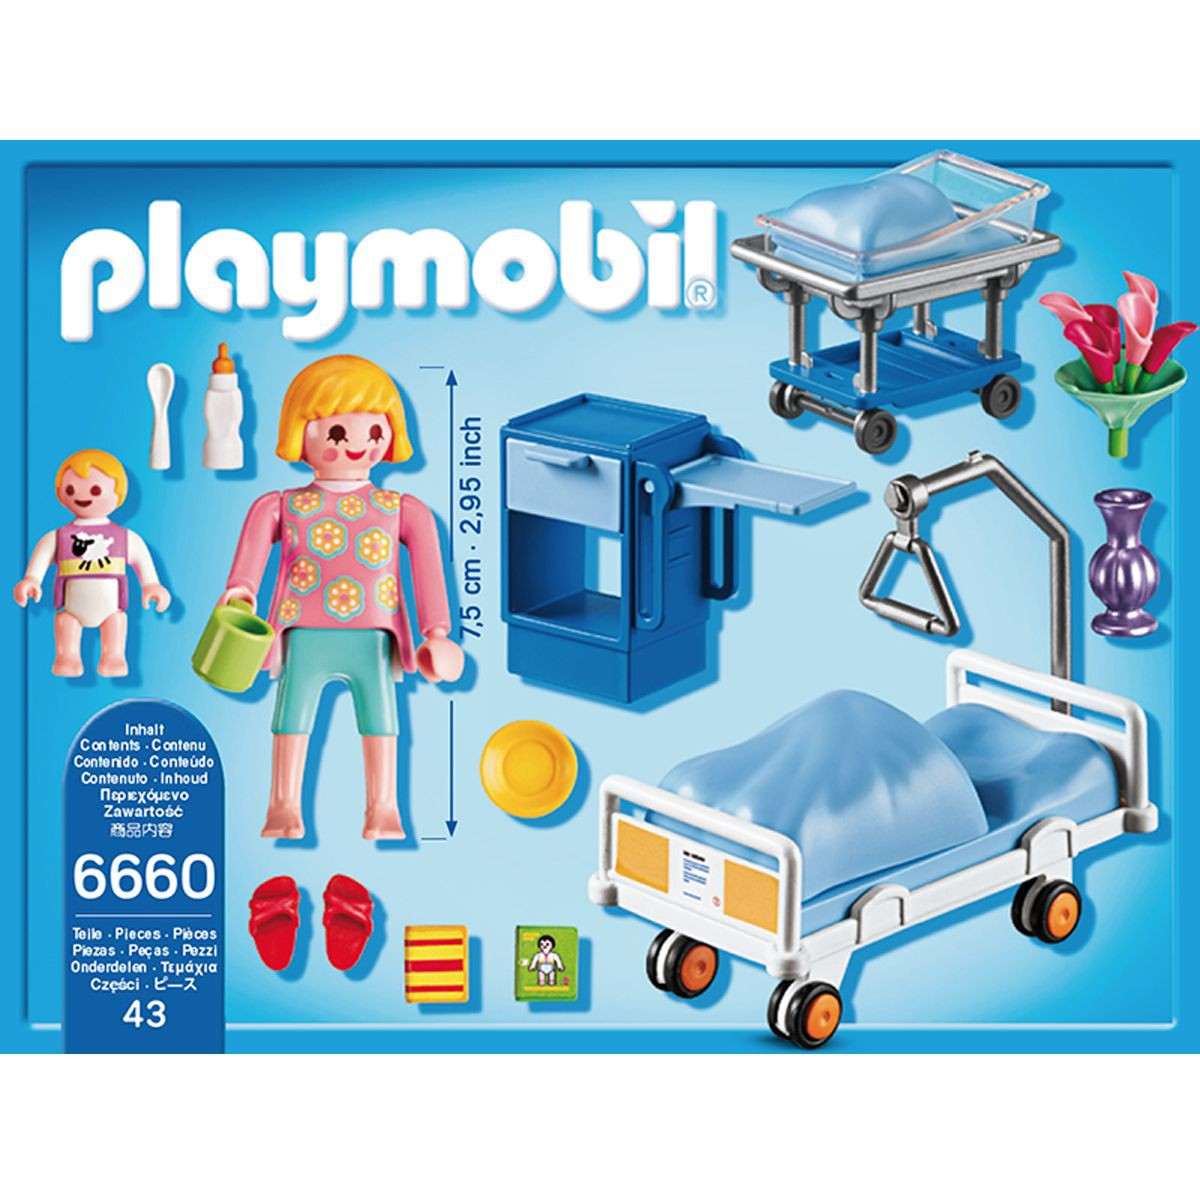 Hopital playmobil le bon coin